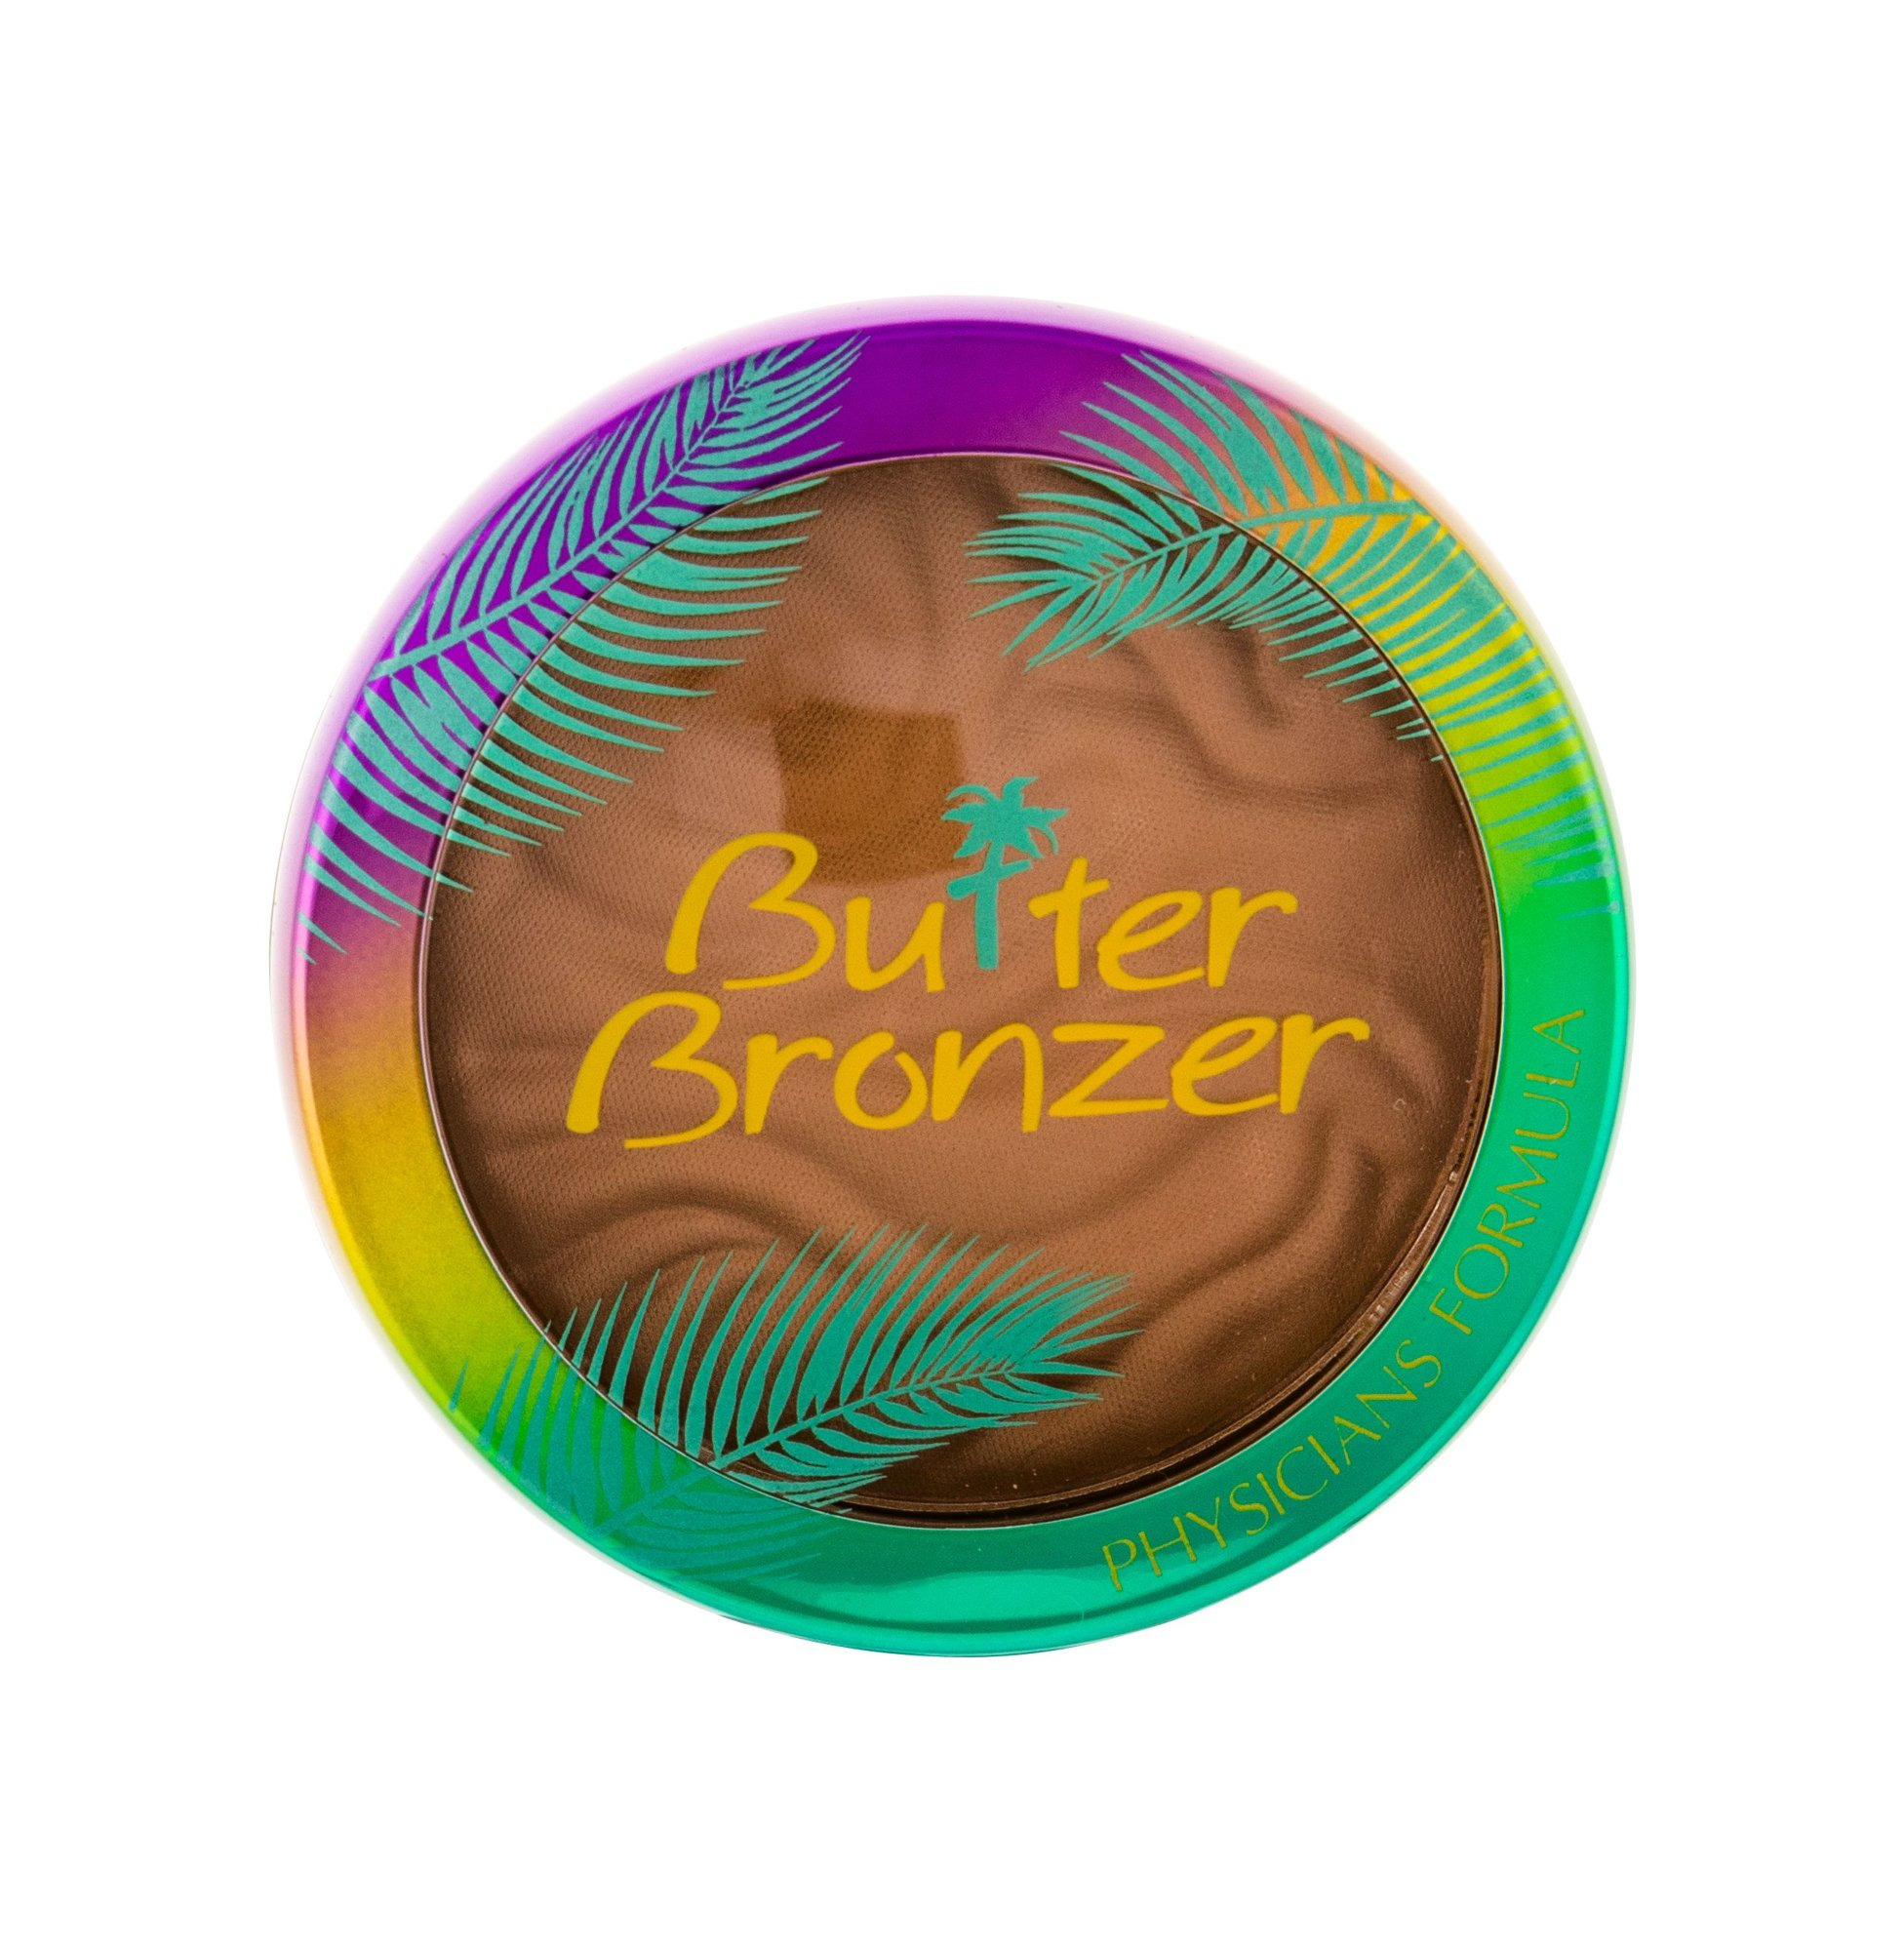 Physicians Formula Murumuru Butter Bronzer 11ml Sunkissed Bronzer